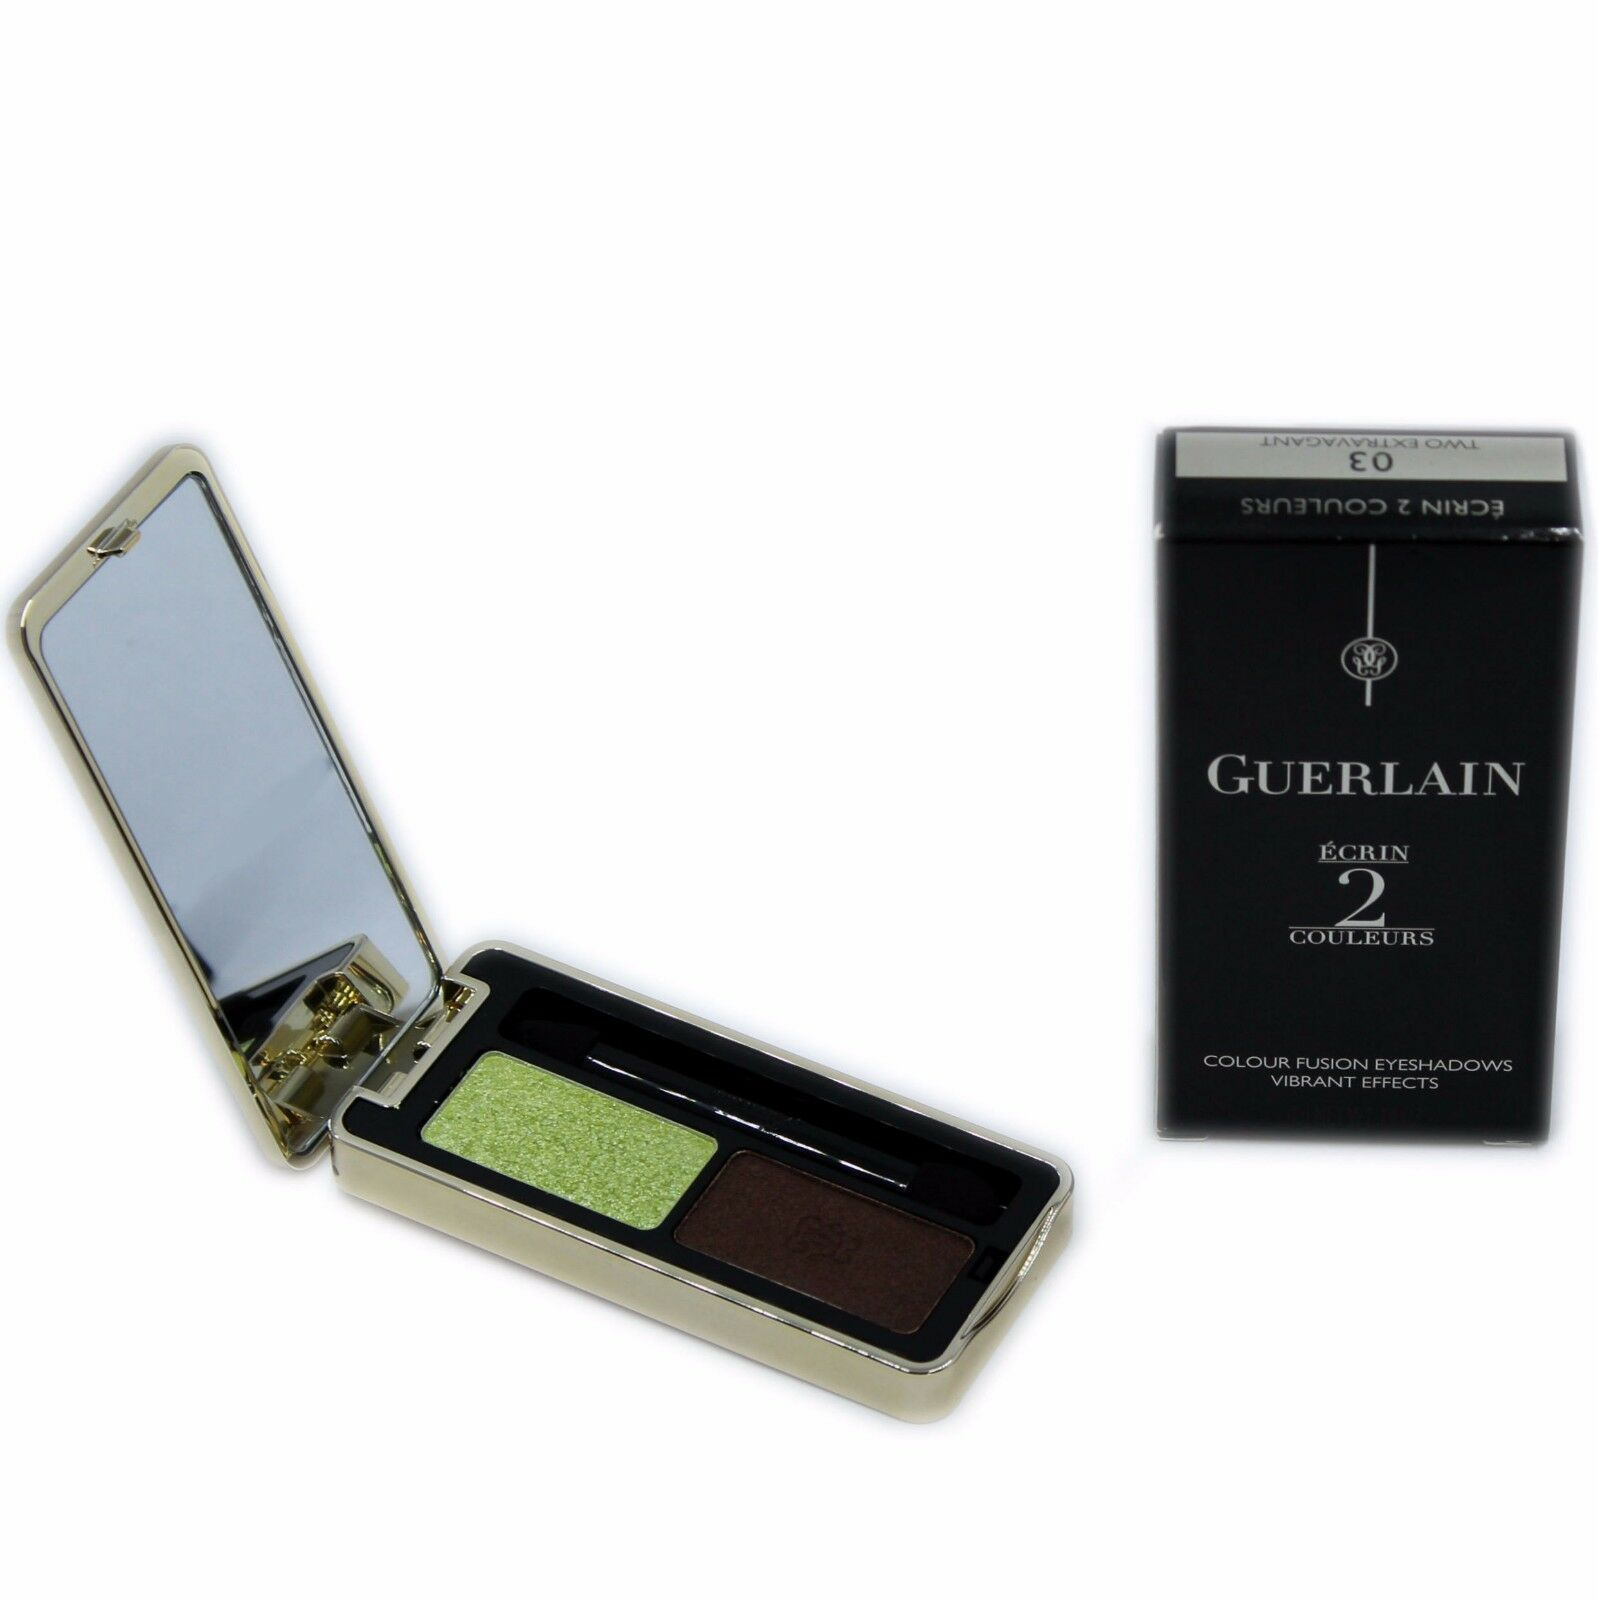 Primary image for GUERLAIN ECRIN 2 COULEURS COLOUR FUSION EYESHADOWS EFFETS VIBRANTS 4G #03-G41389